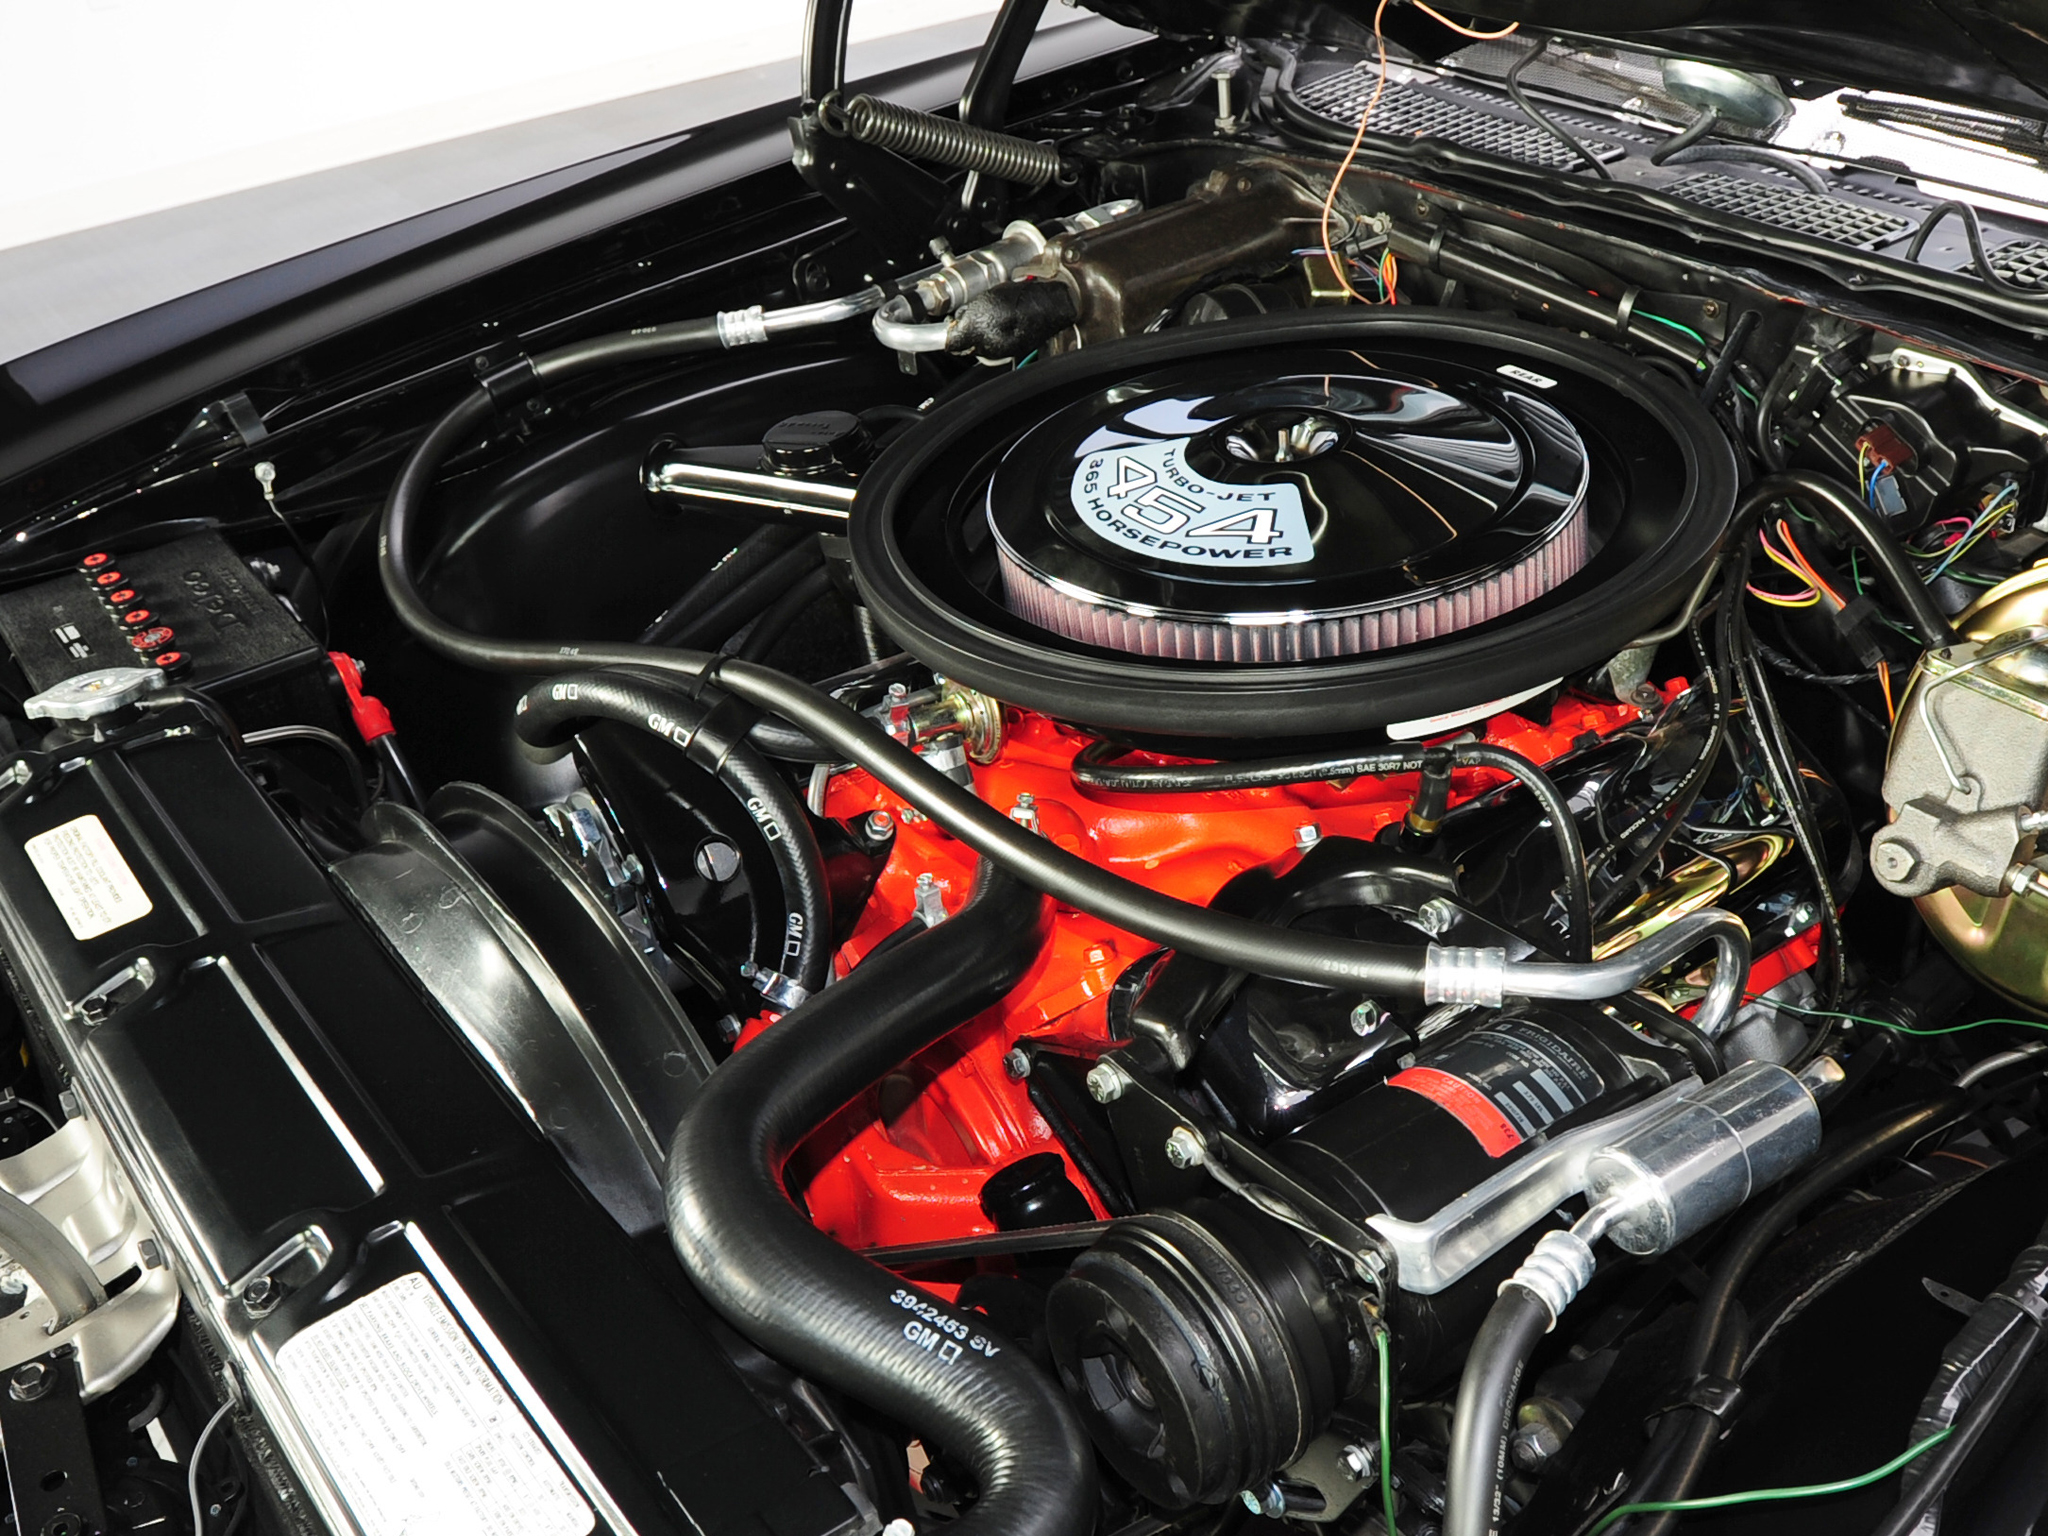 Chevrolet Chevelle SS 454 photos - Photo Gallery Page #2| CarsBase.com